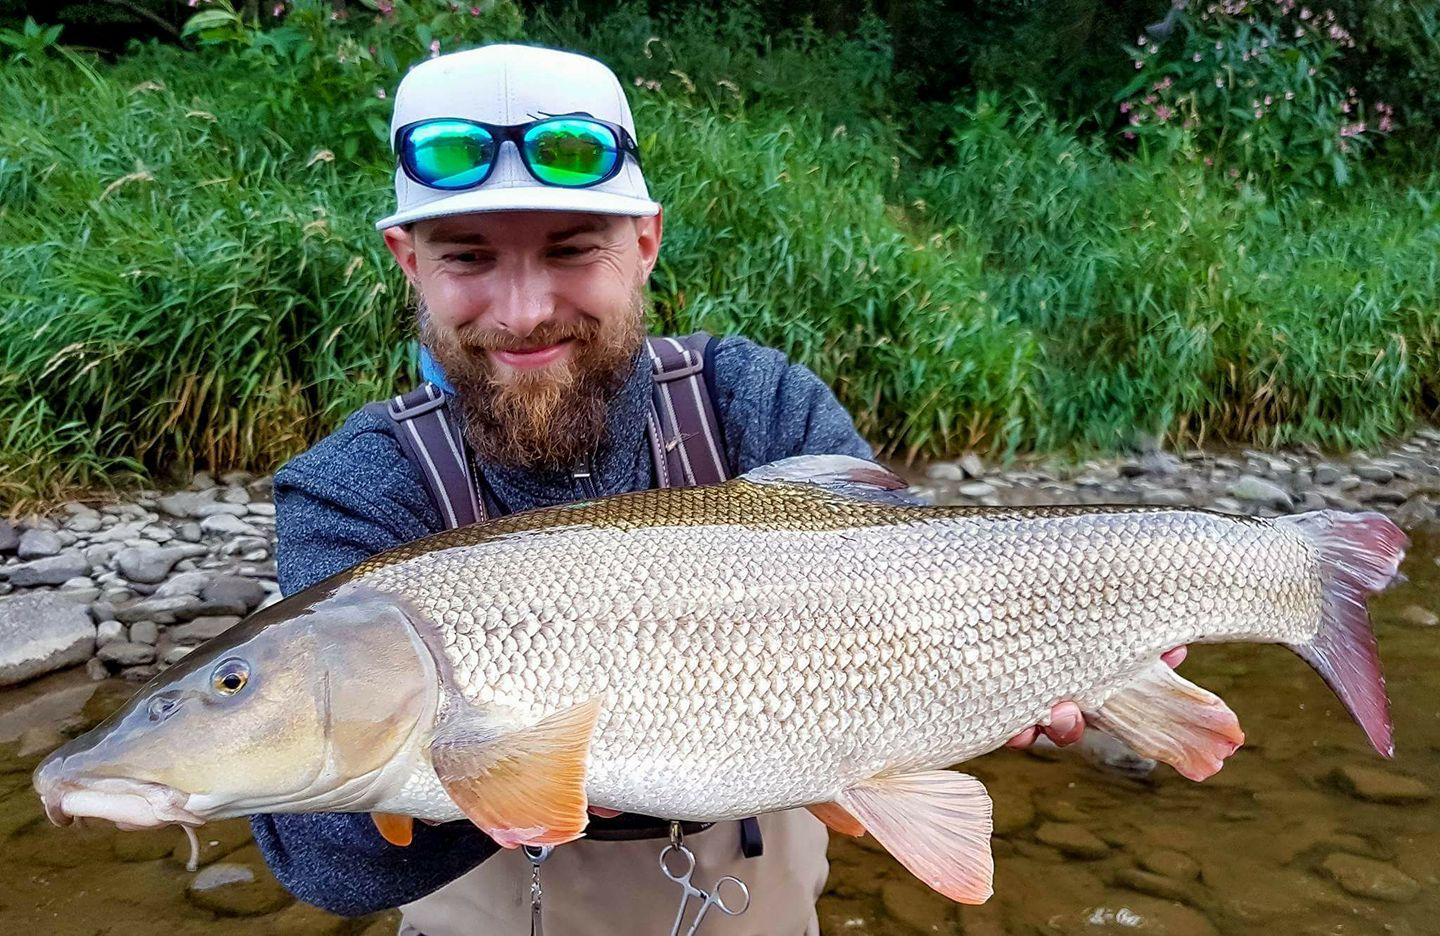 One of the biggest I cought - Fly fishing in Poland